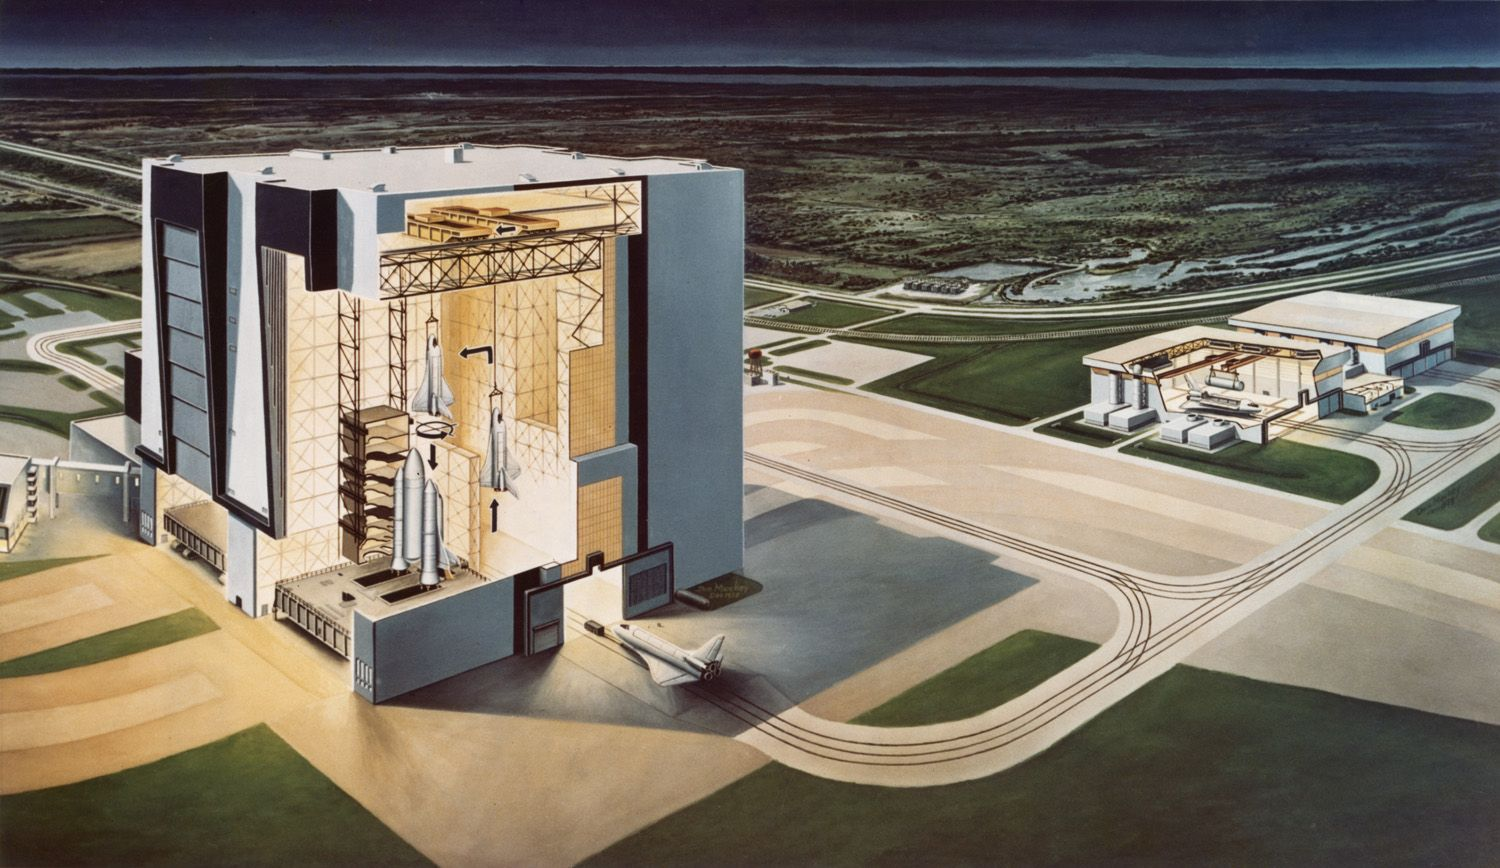 An artist's impression showing of the Vehicle Assembly Building at the Kennedy Space Center on Merritt Island, Florida, 1974.